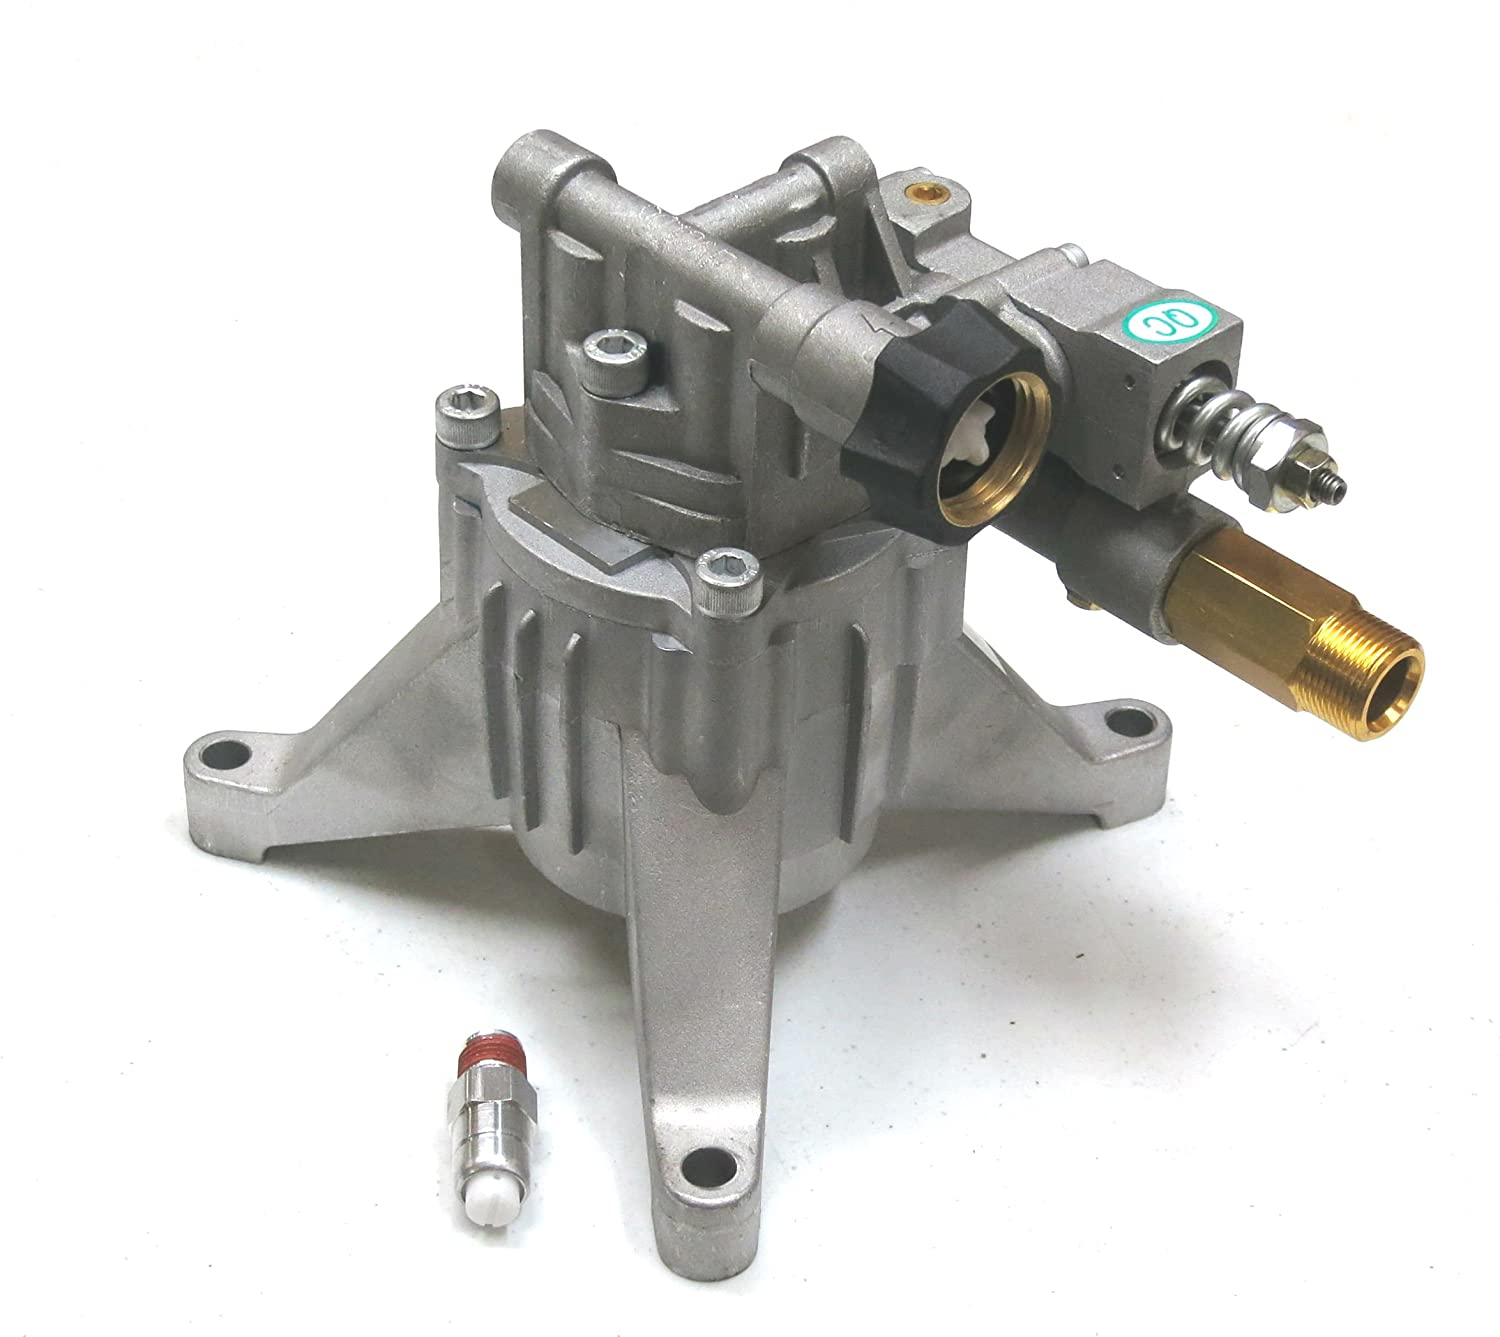 Homelite Universal POWER PRESSURE WASHER WATER PUMP 2800 psi 2.5 gpm fits MANY MODELS 308653052